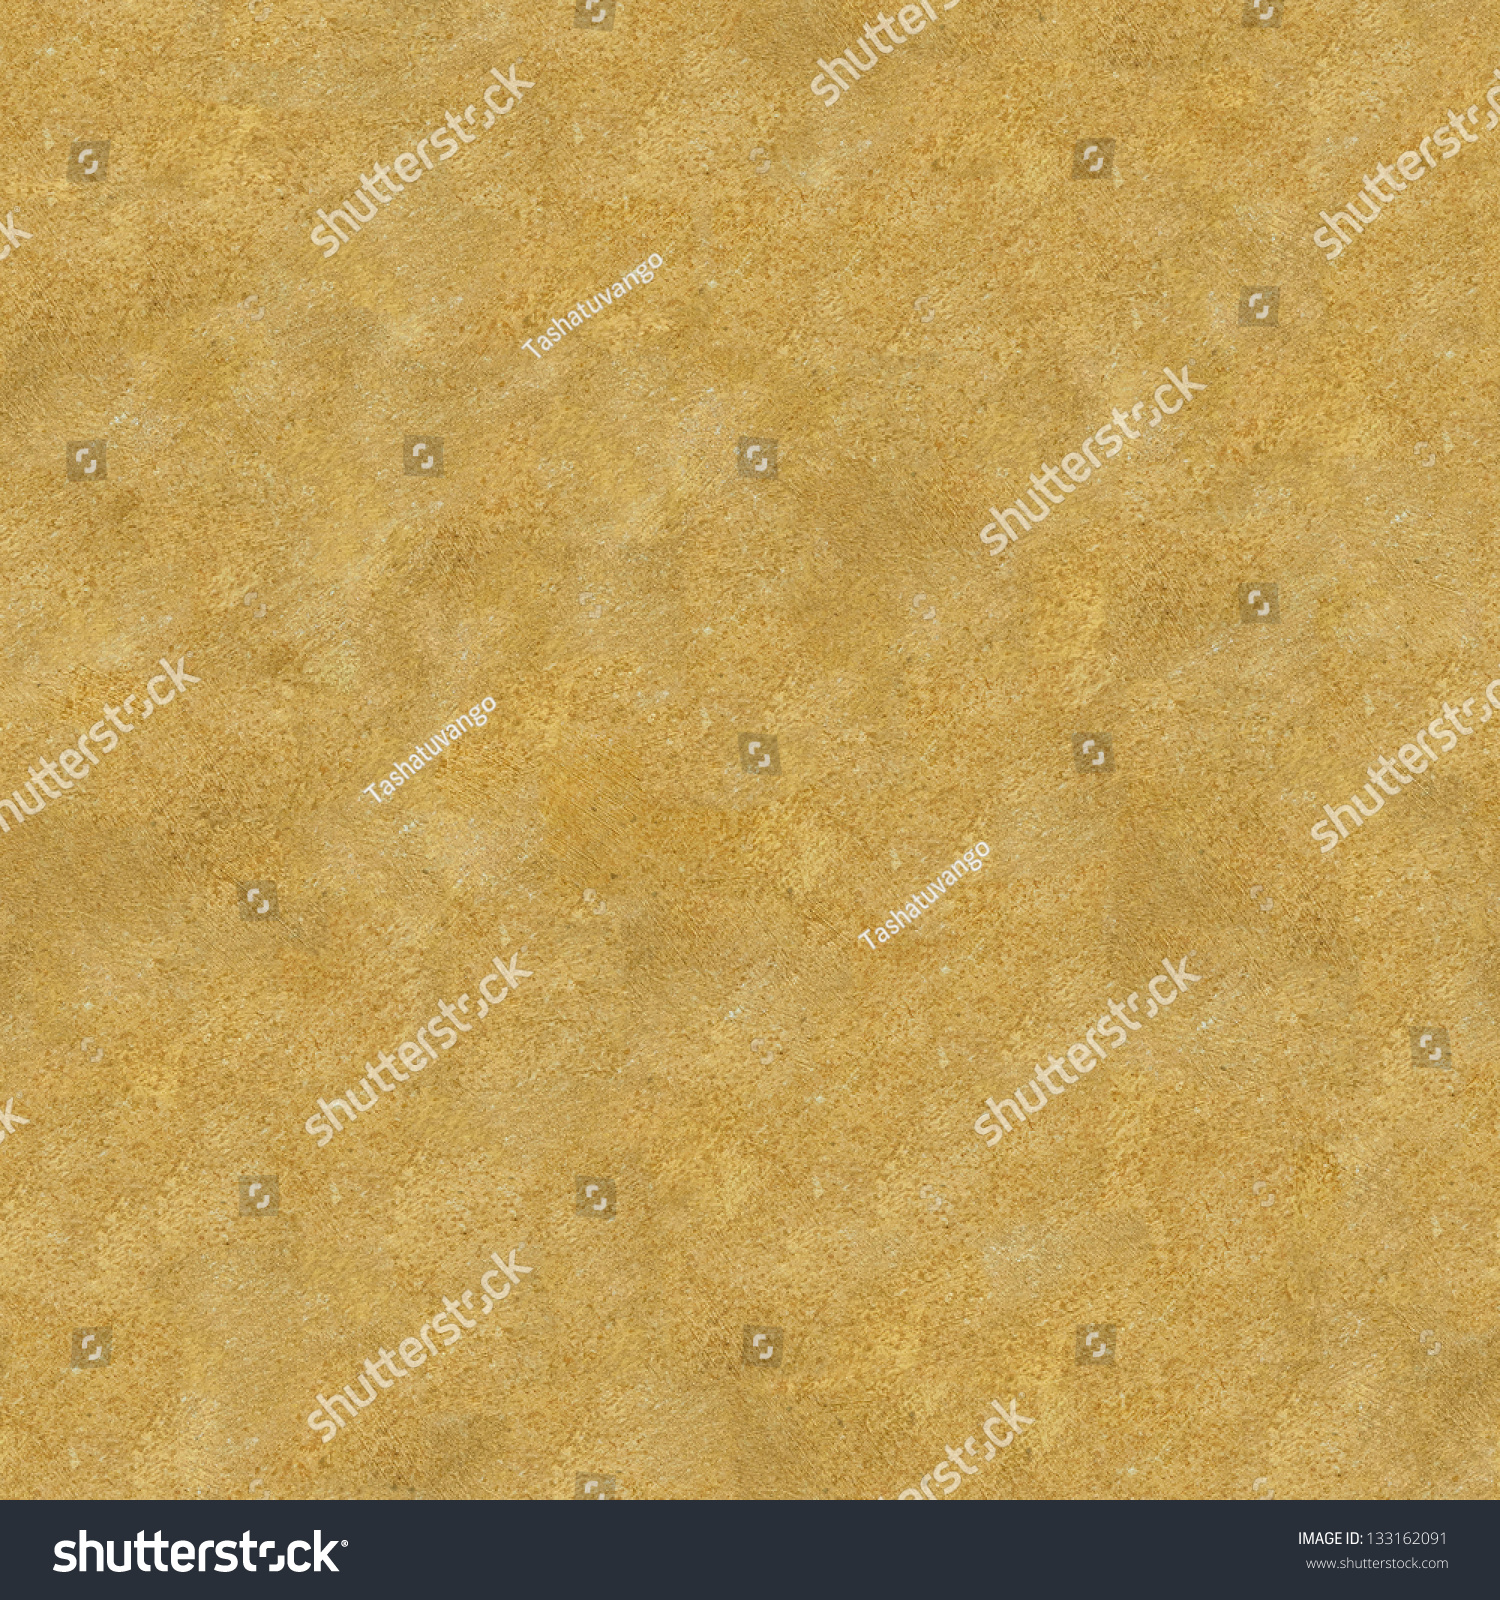 Yellow Decorative Plaster Wall Seamless Tileable Stock Photo & Image ...